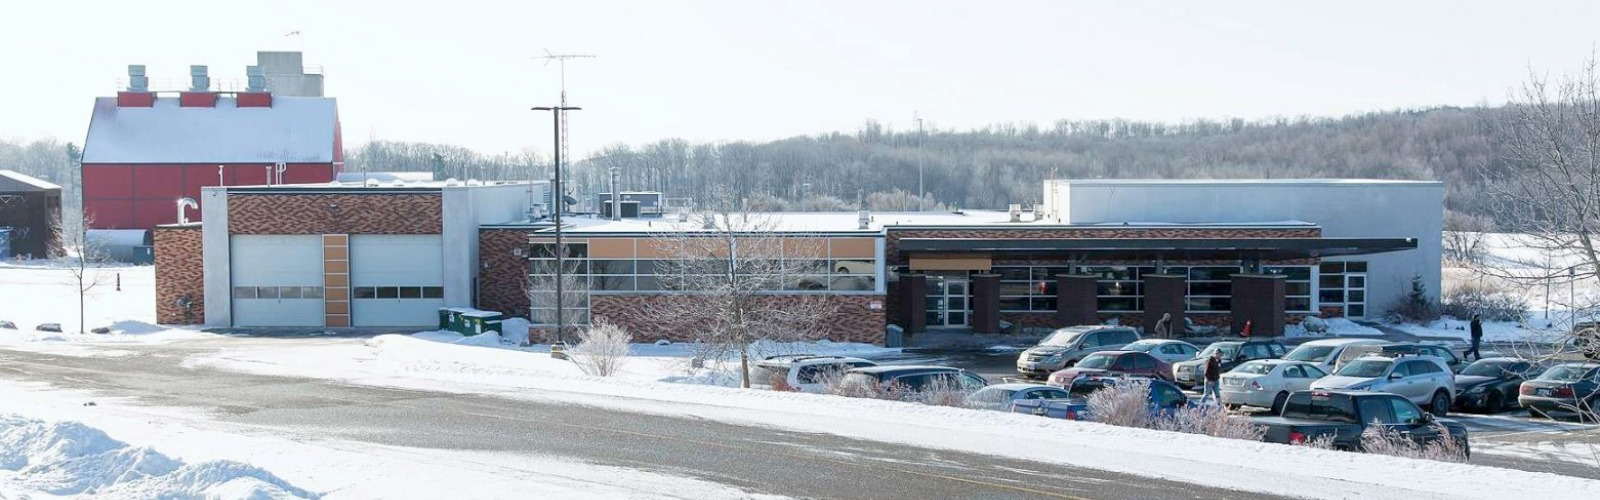 Picture of the Waterloo Region Emergenc Services Training Centre